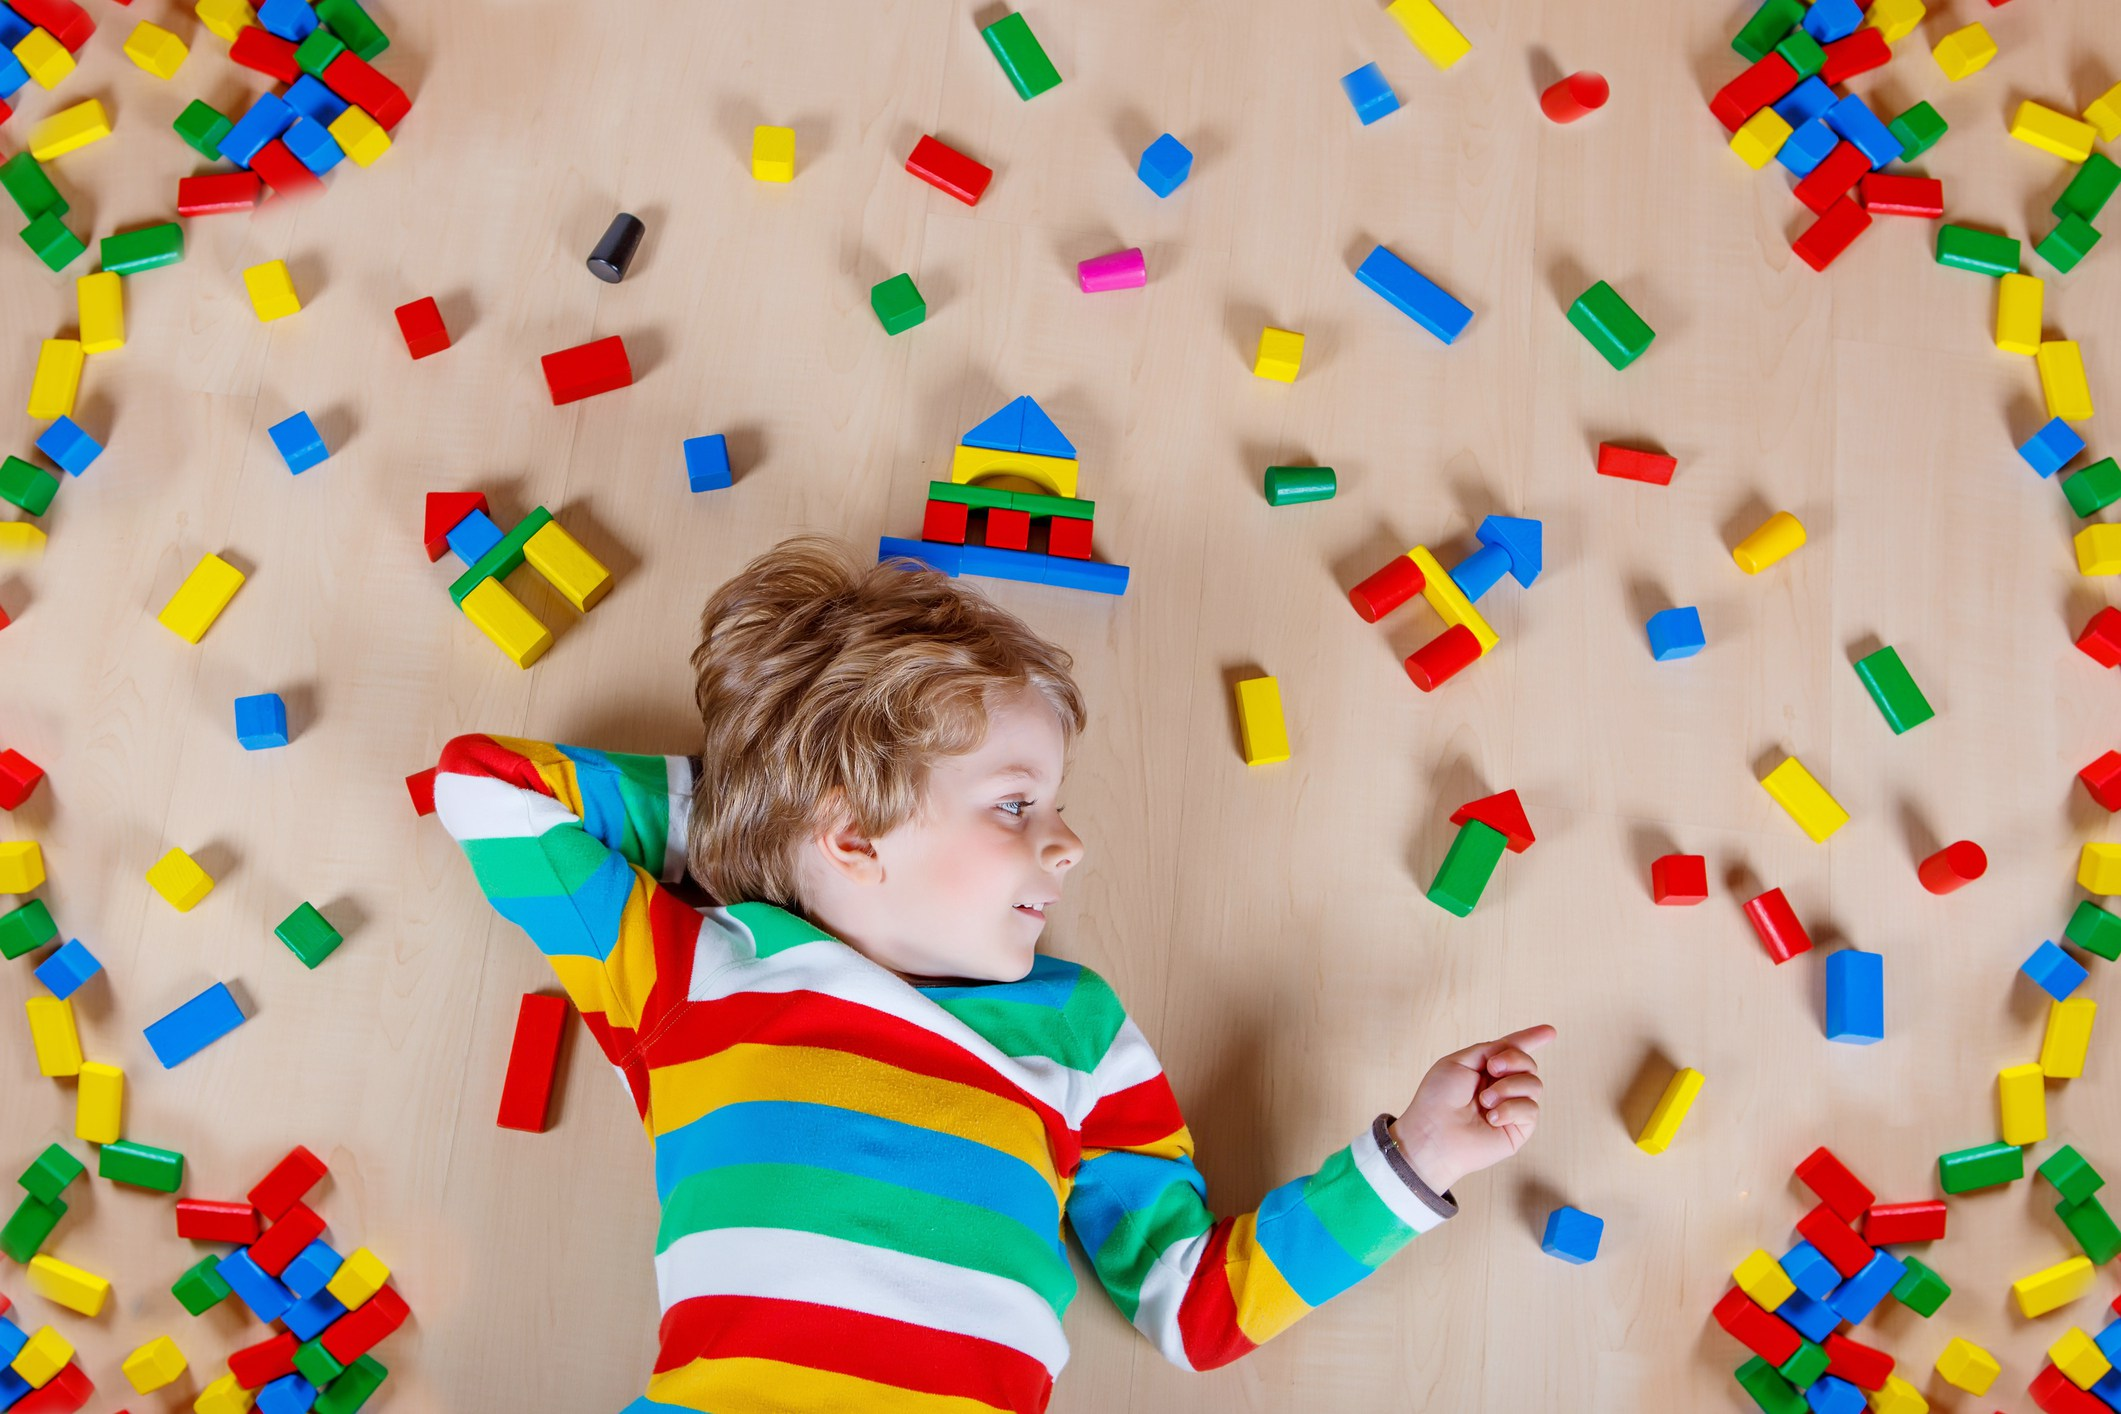 Little blond child playing with lots of colorful wooden blocks indoor. Active kid boy wearing colorful shirt and having fun with building and creating.